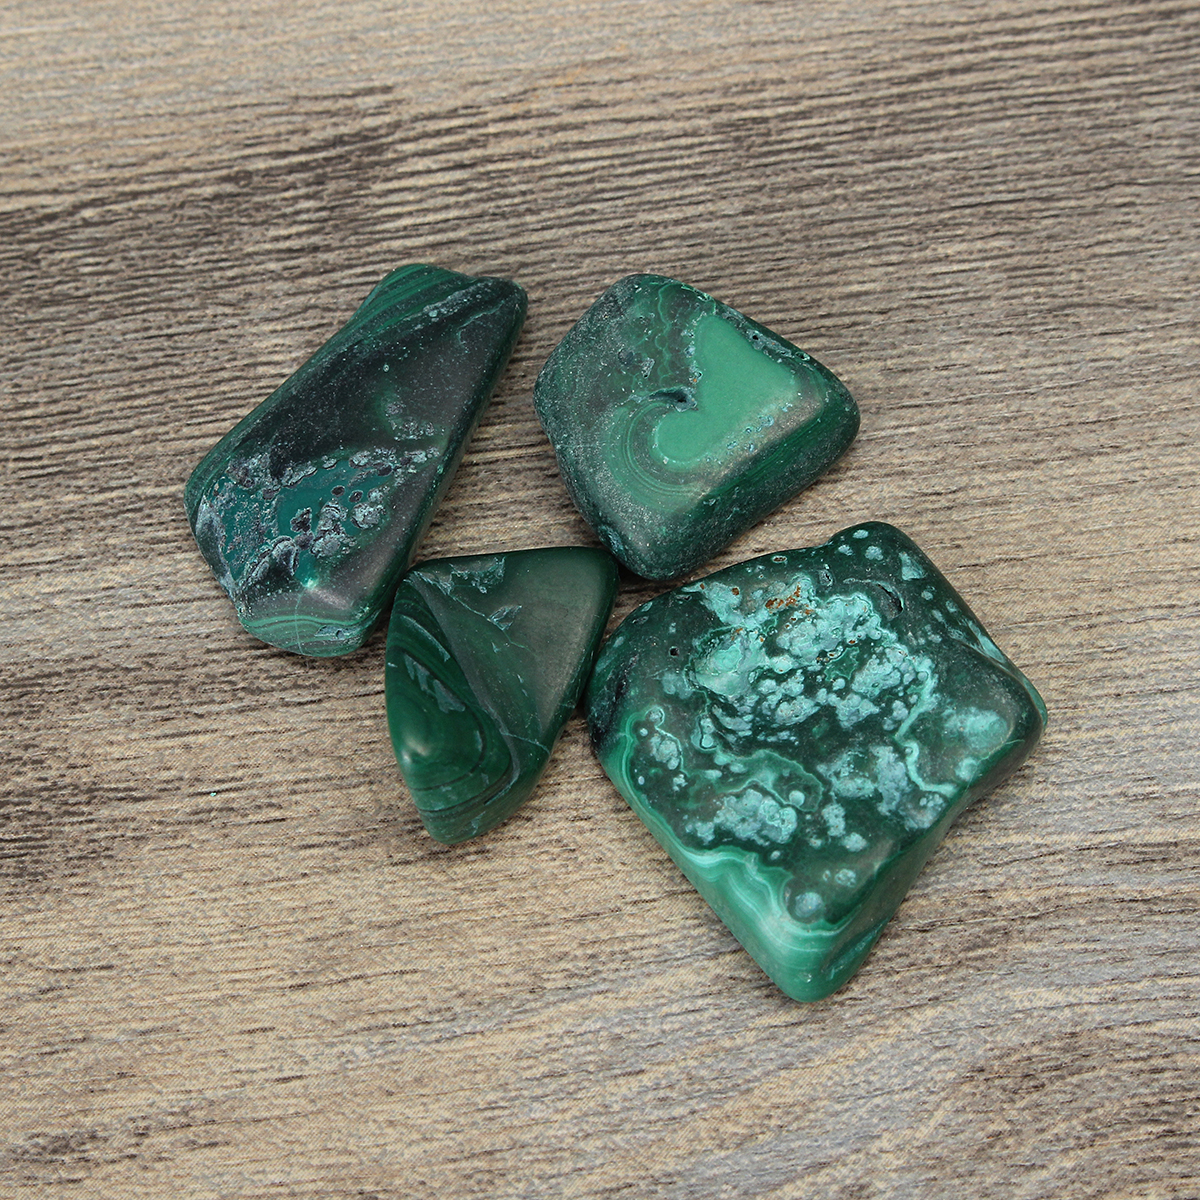 6pcs Green Malachite Healing Tumbled Stone DIY Jewelry Decoration Ornament